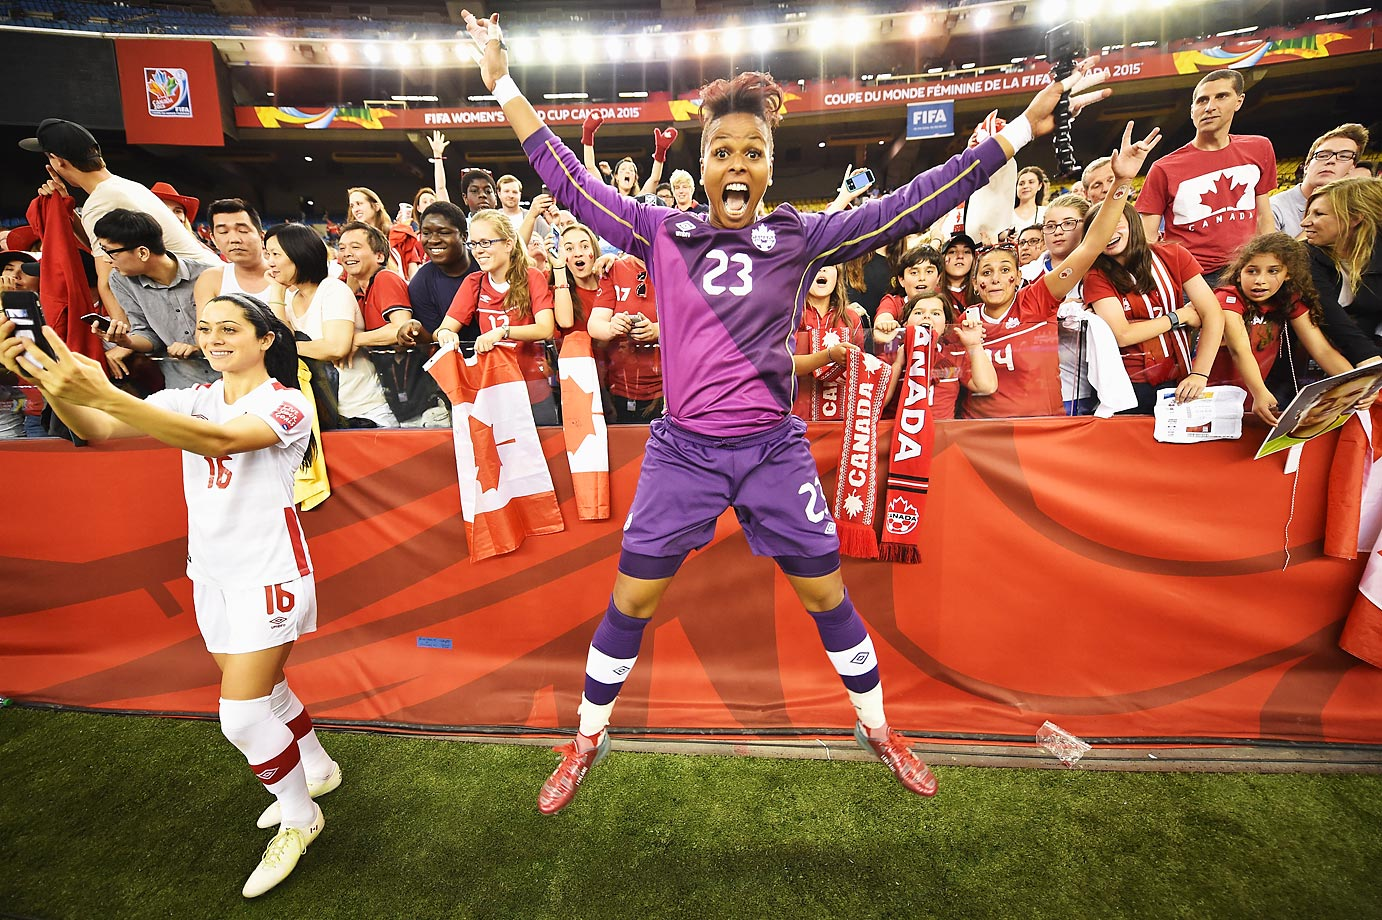 Karina LeBlanc of Canada celebrates after the Netherlands and Canada game.